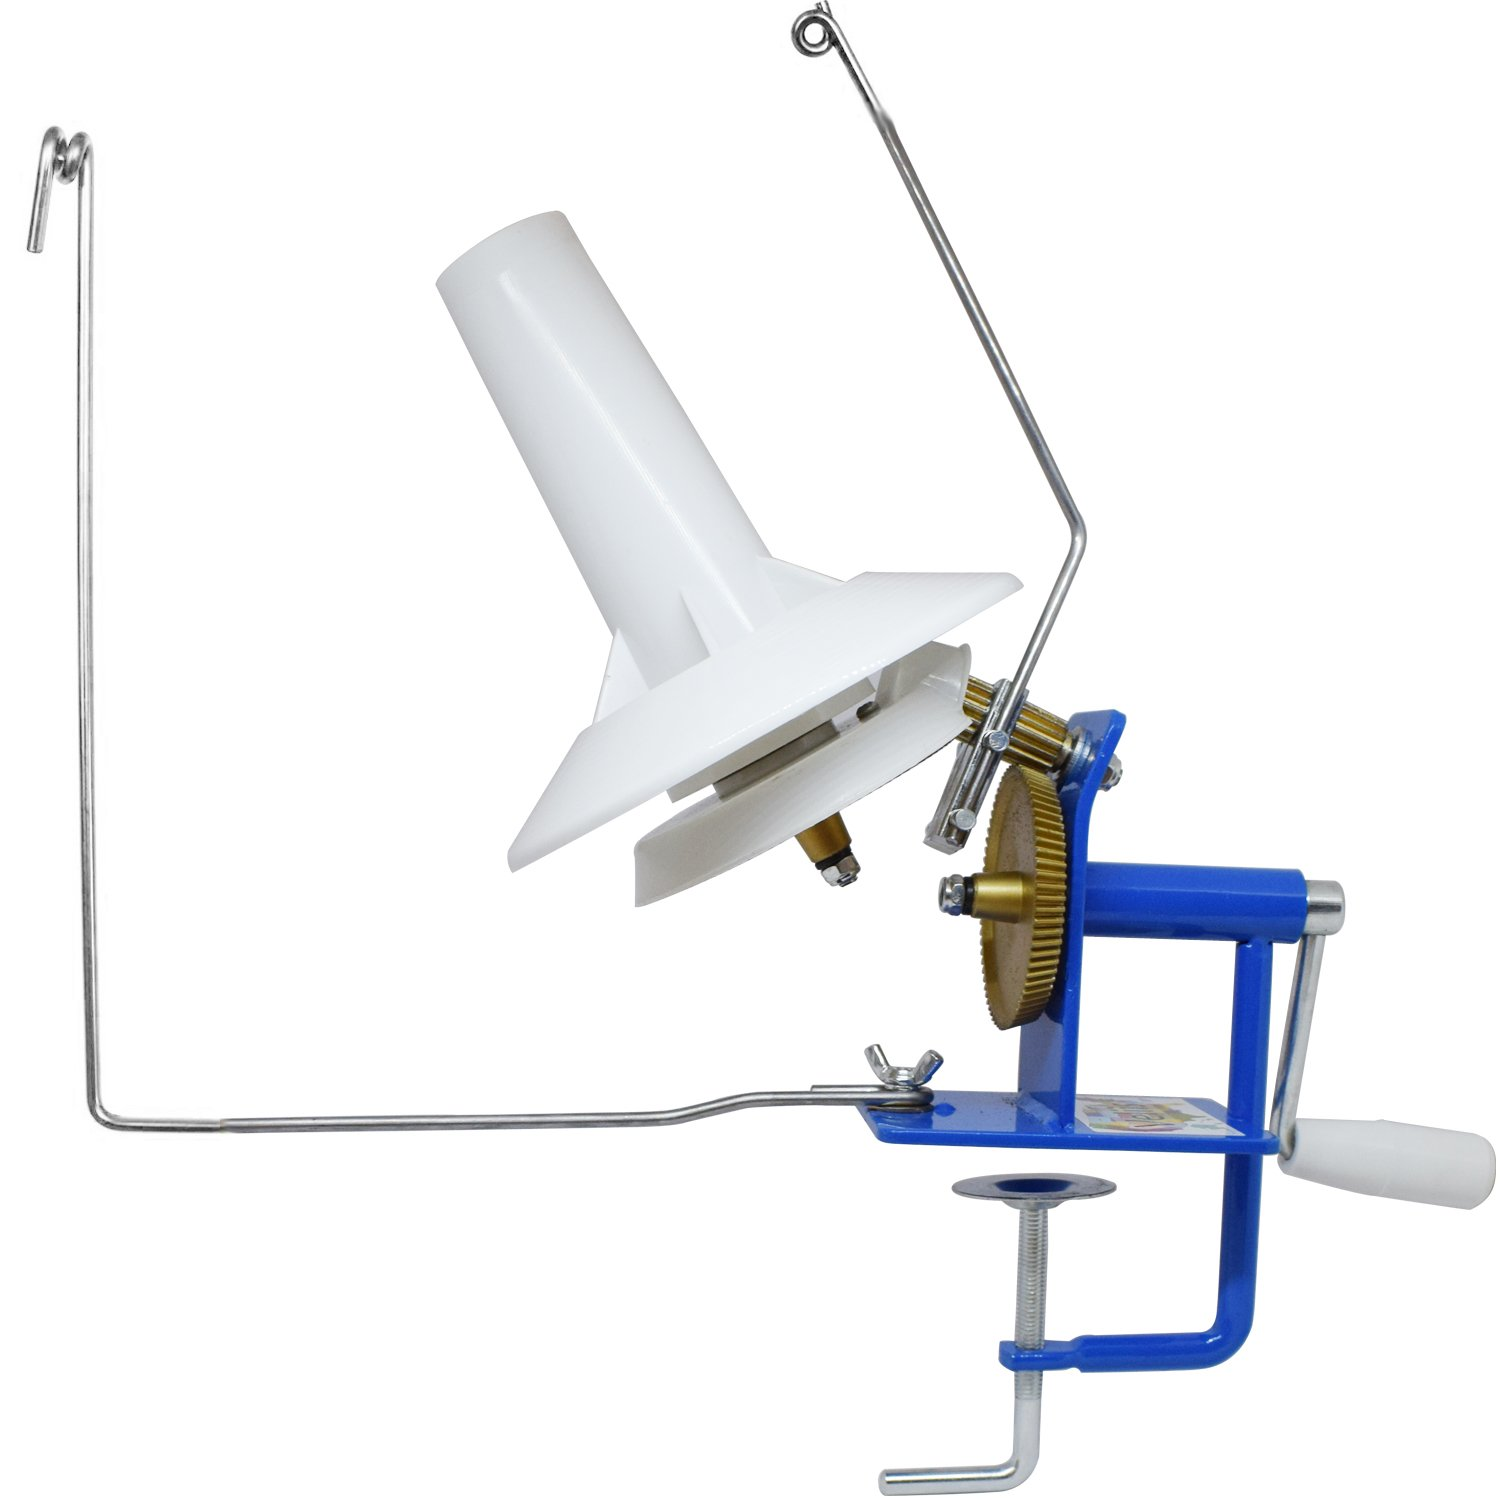 Large Yarn Ball Winder, Jumbo Metal Fiber/Wool/String Ball Winder Hand Operated Capacity 10-Ounce Veliis 4336905463